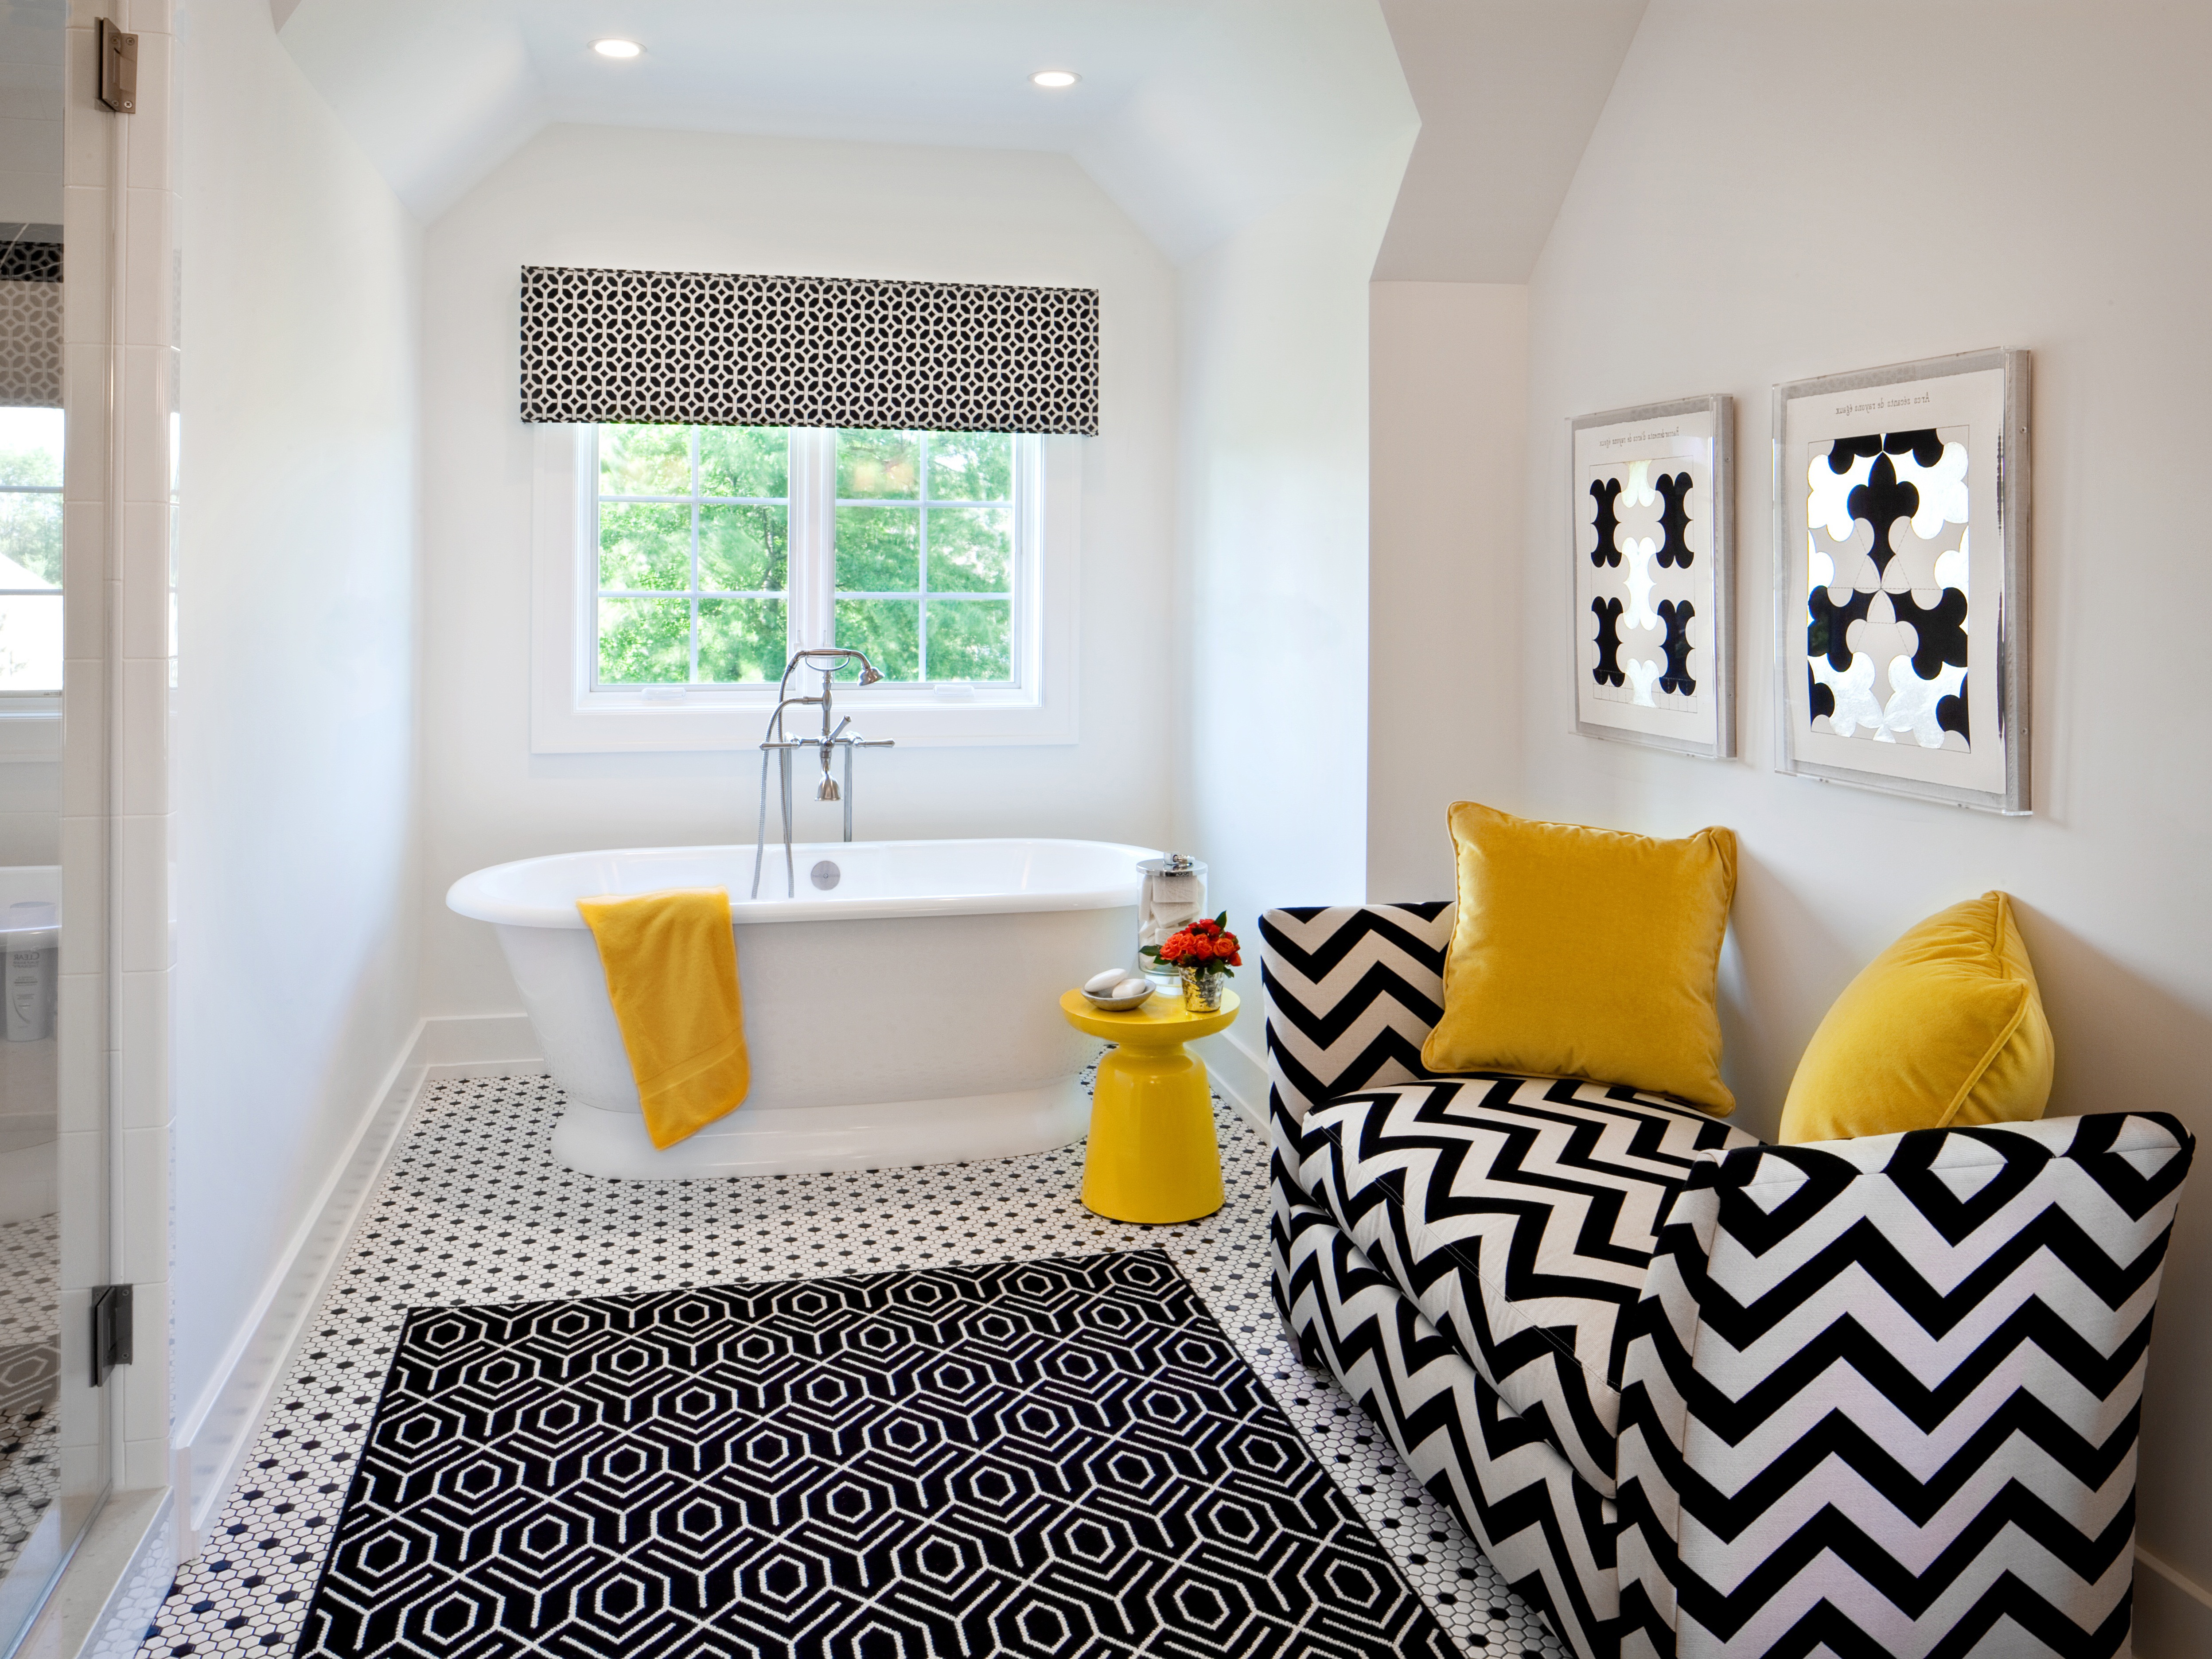 Featured Image of 15 Best Bathroom Rugs And Bath/Shower Mats Decor Ideas